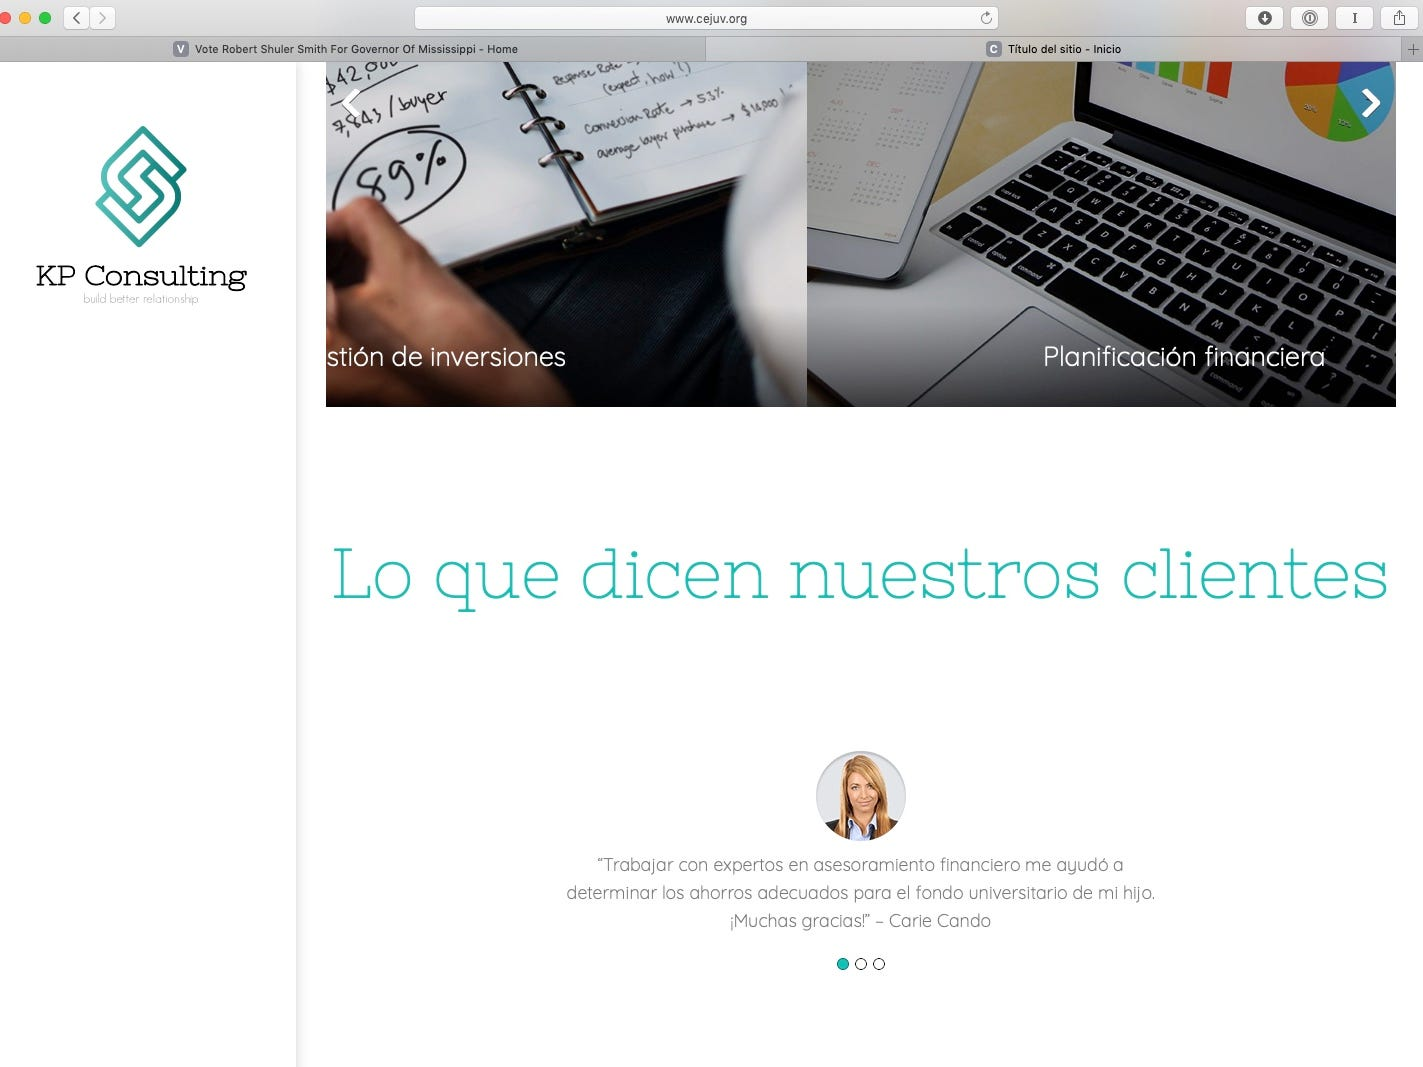 As seen in this March 21, 2019, screenshot, a Spanish-Language website features all three of the stock images above testimonials featured on the Robert Shuler Smith campaign website. On this particular site, the three images rotate through on a set interval.